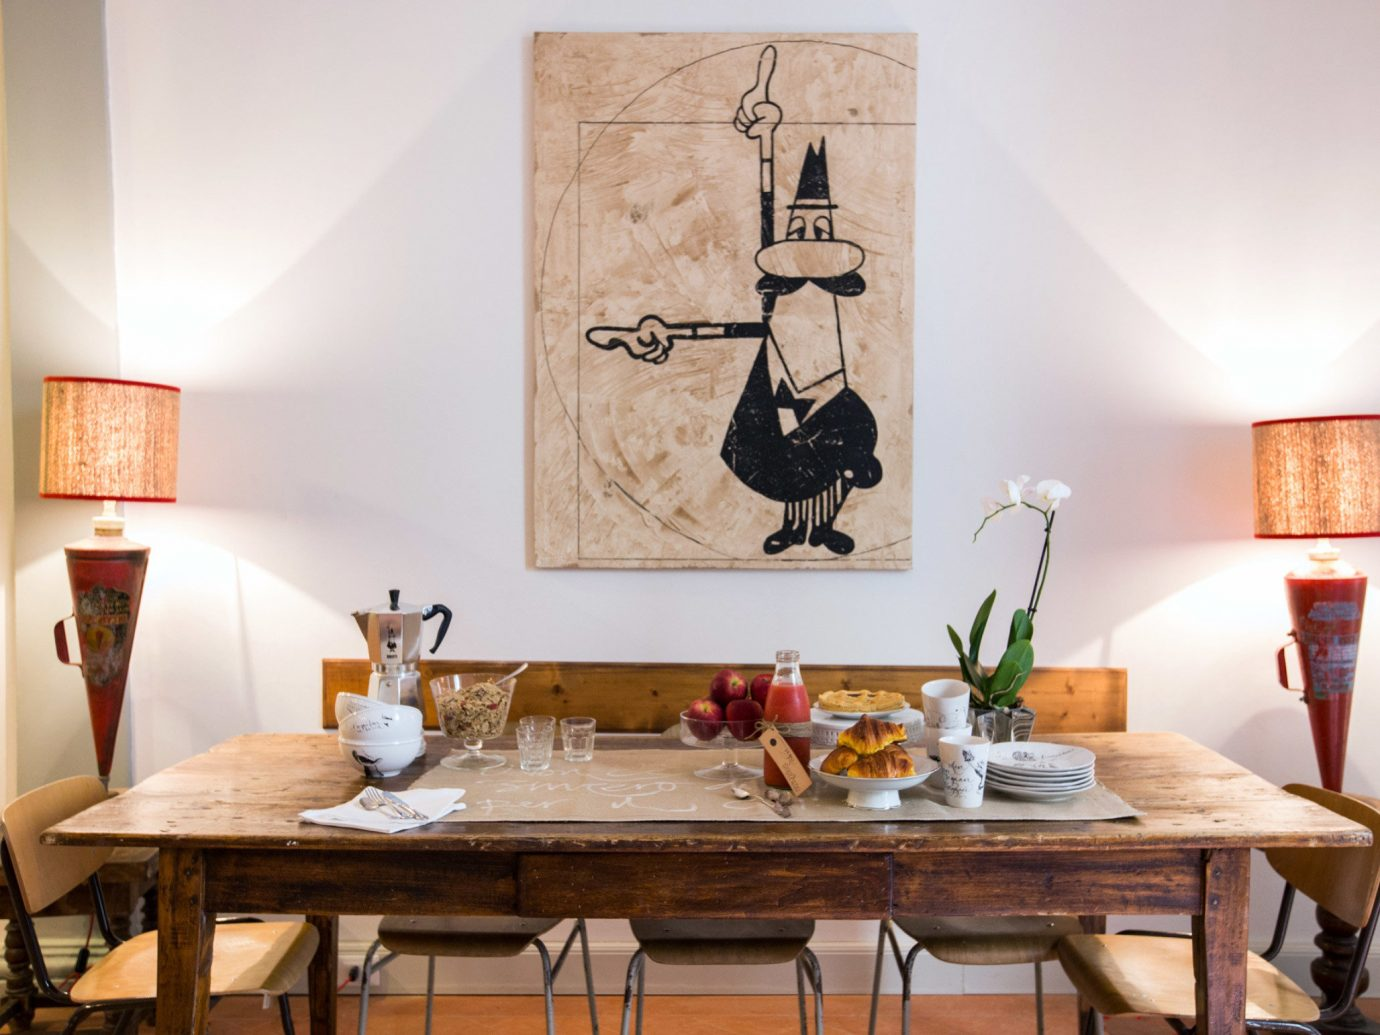 City Design Dining Drink Eat Florence Hotels Italy Living Luxury wall table indoor floor room dining room property living room home interior design lighting wood estate furniture cottage apartment